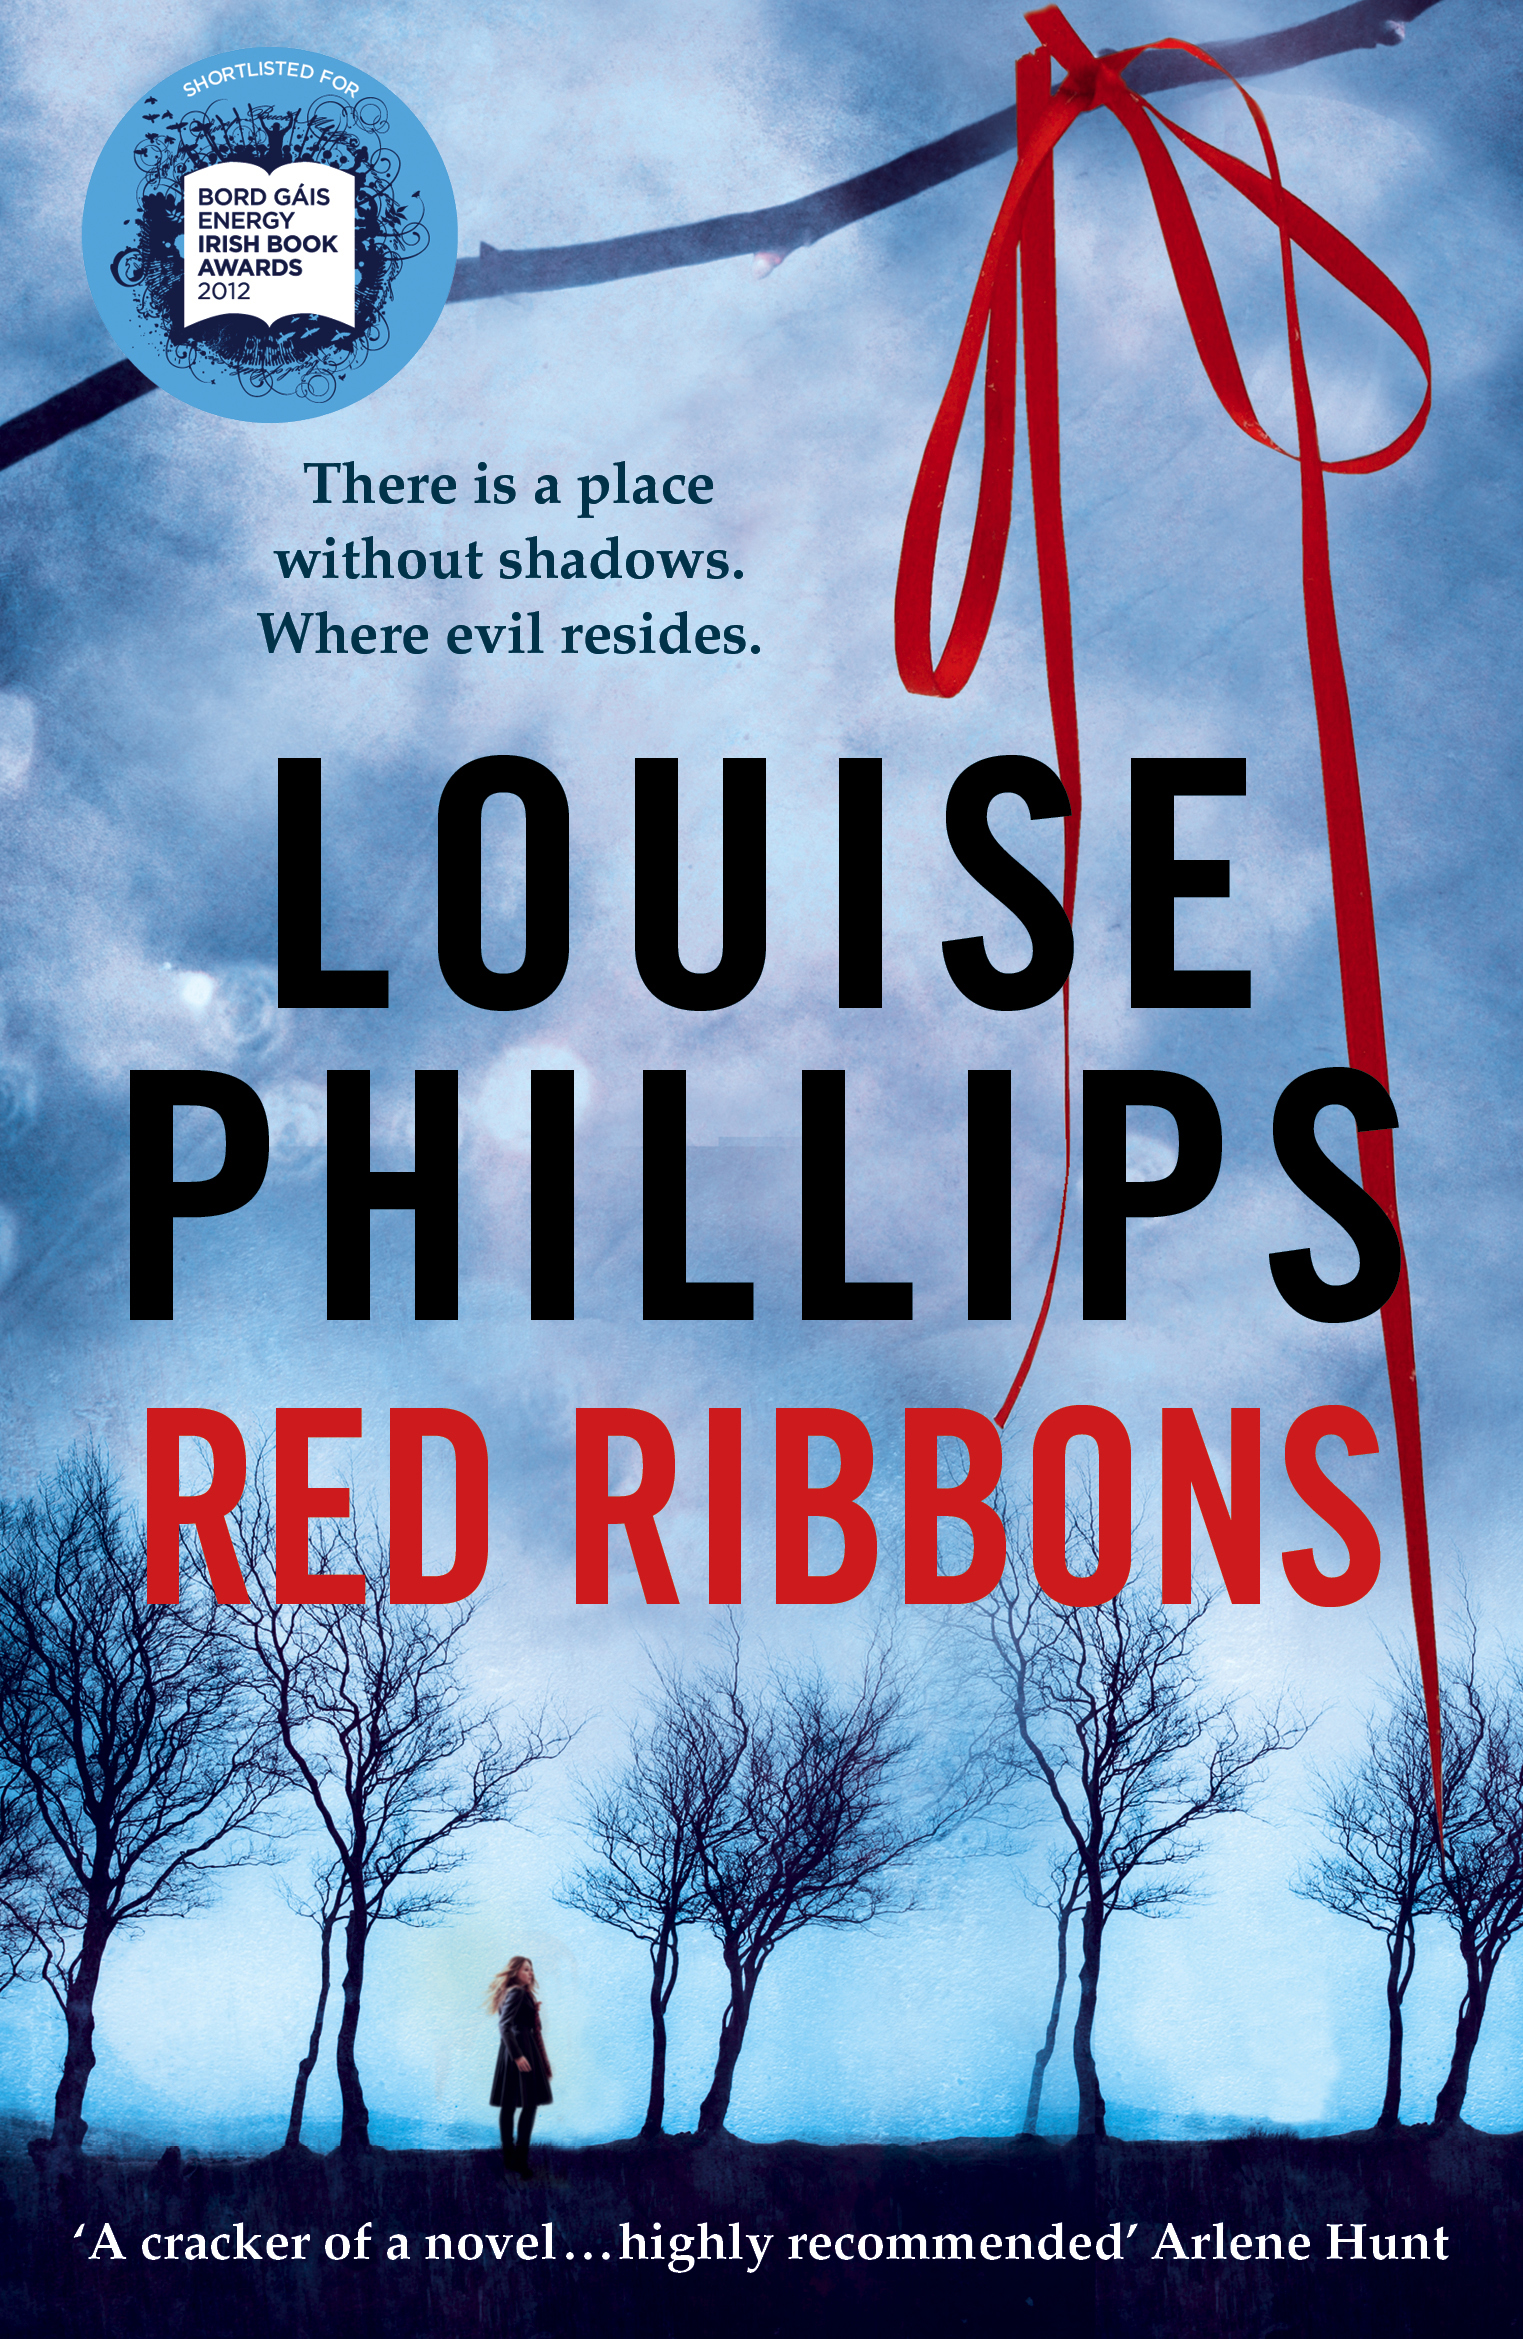 Red Ribbons by Louise Phillips Now in Paperback